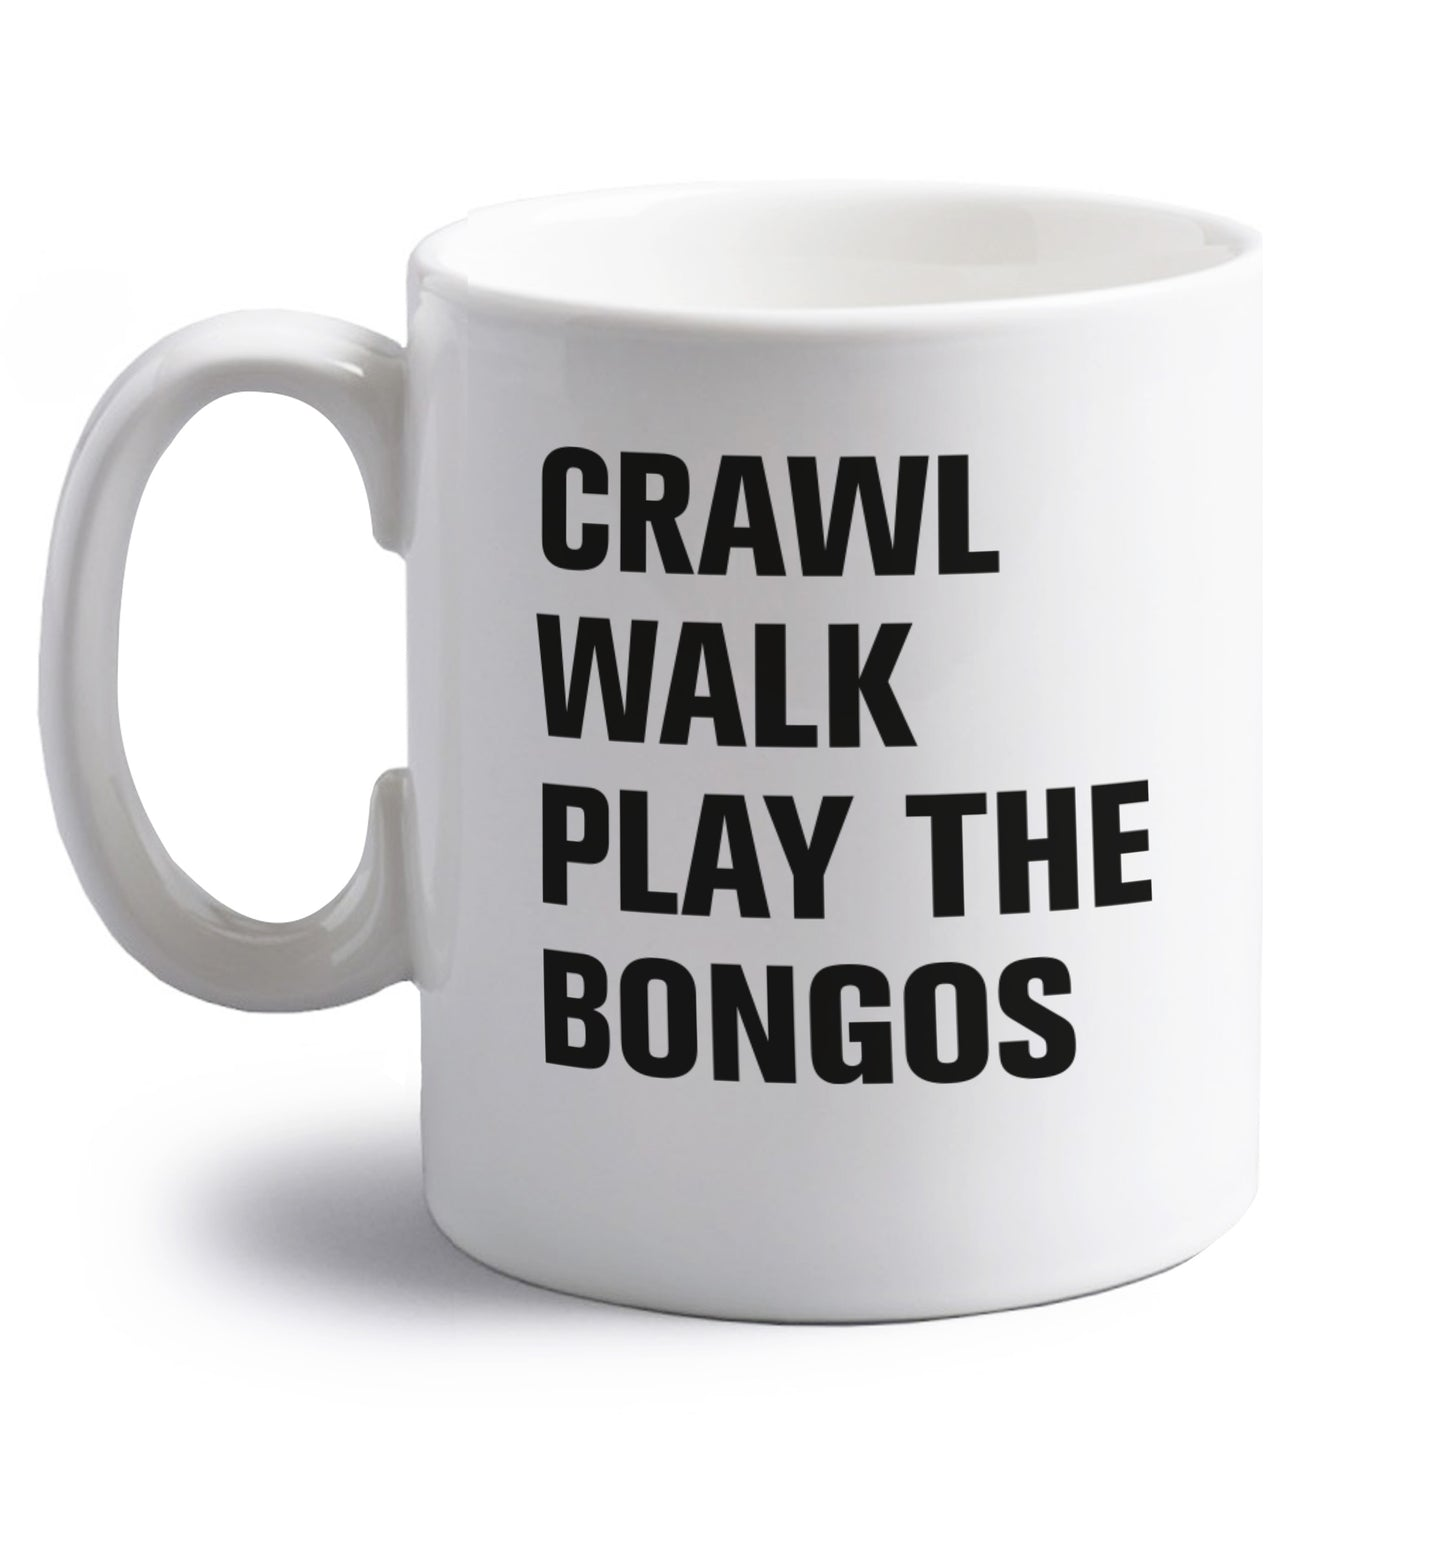 Crawl Walk Play Bongos right handed white ceramic mug